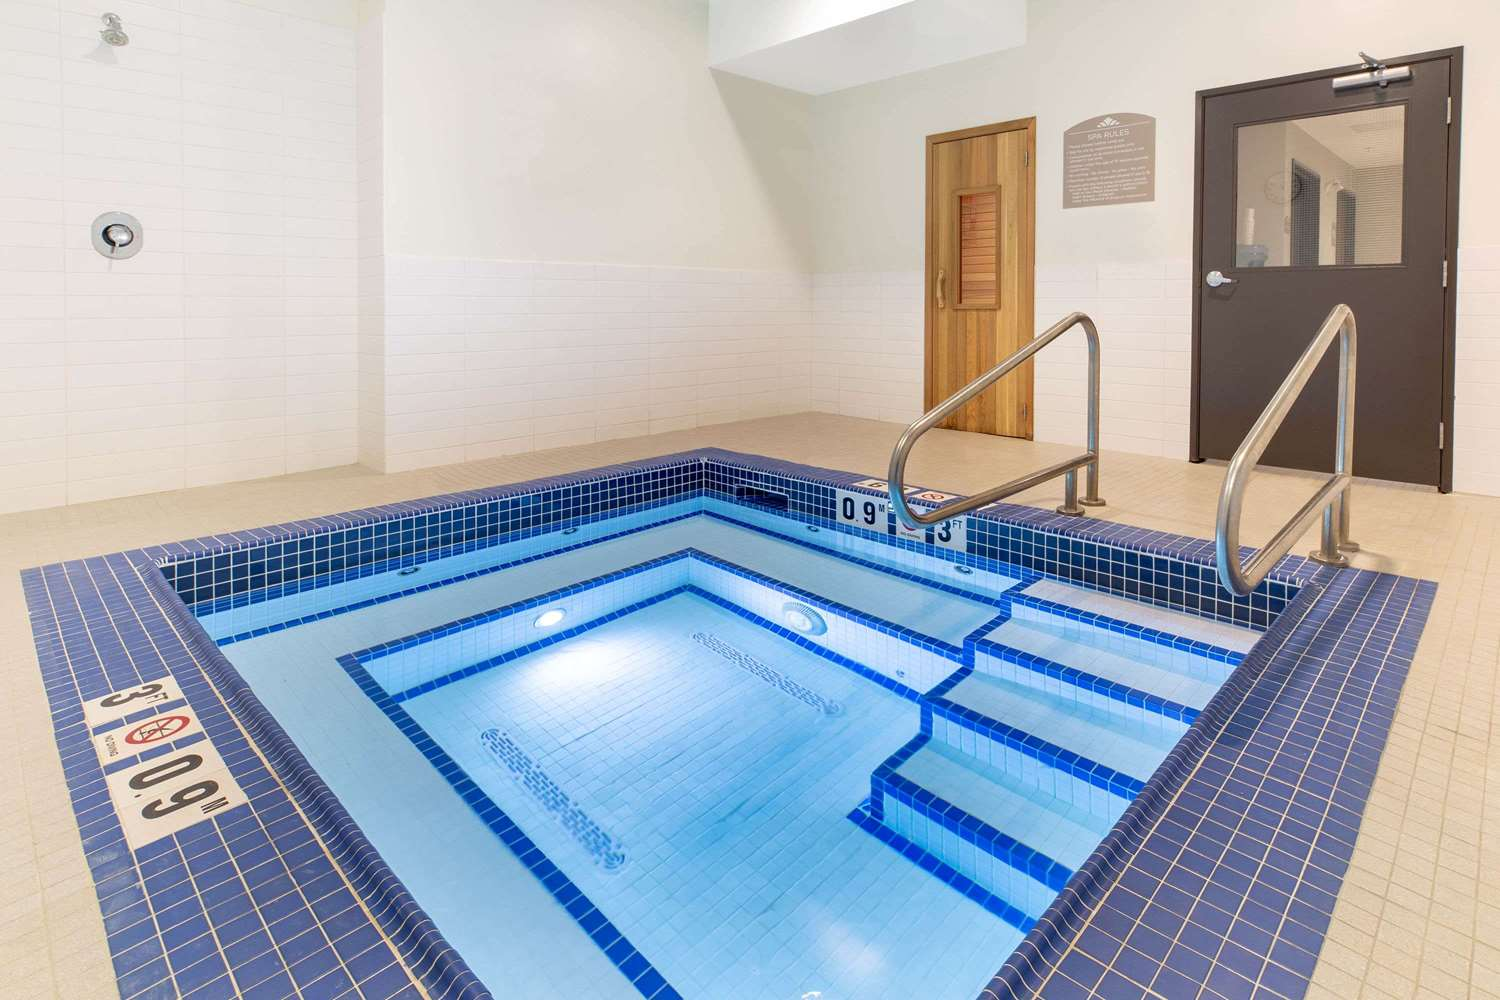 Microtel Inn & Suites by Wyndham Fort McMurray, AB - See Discounts